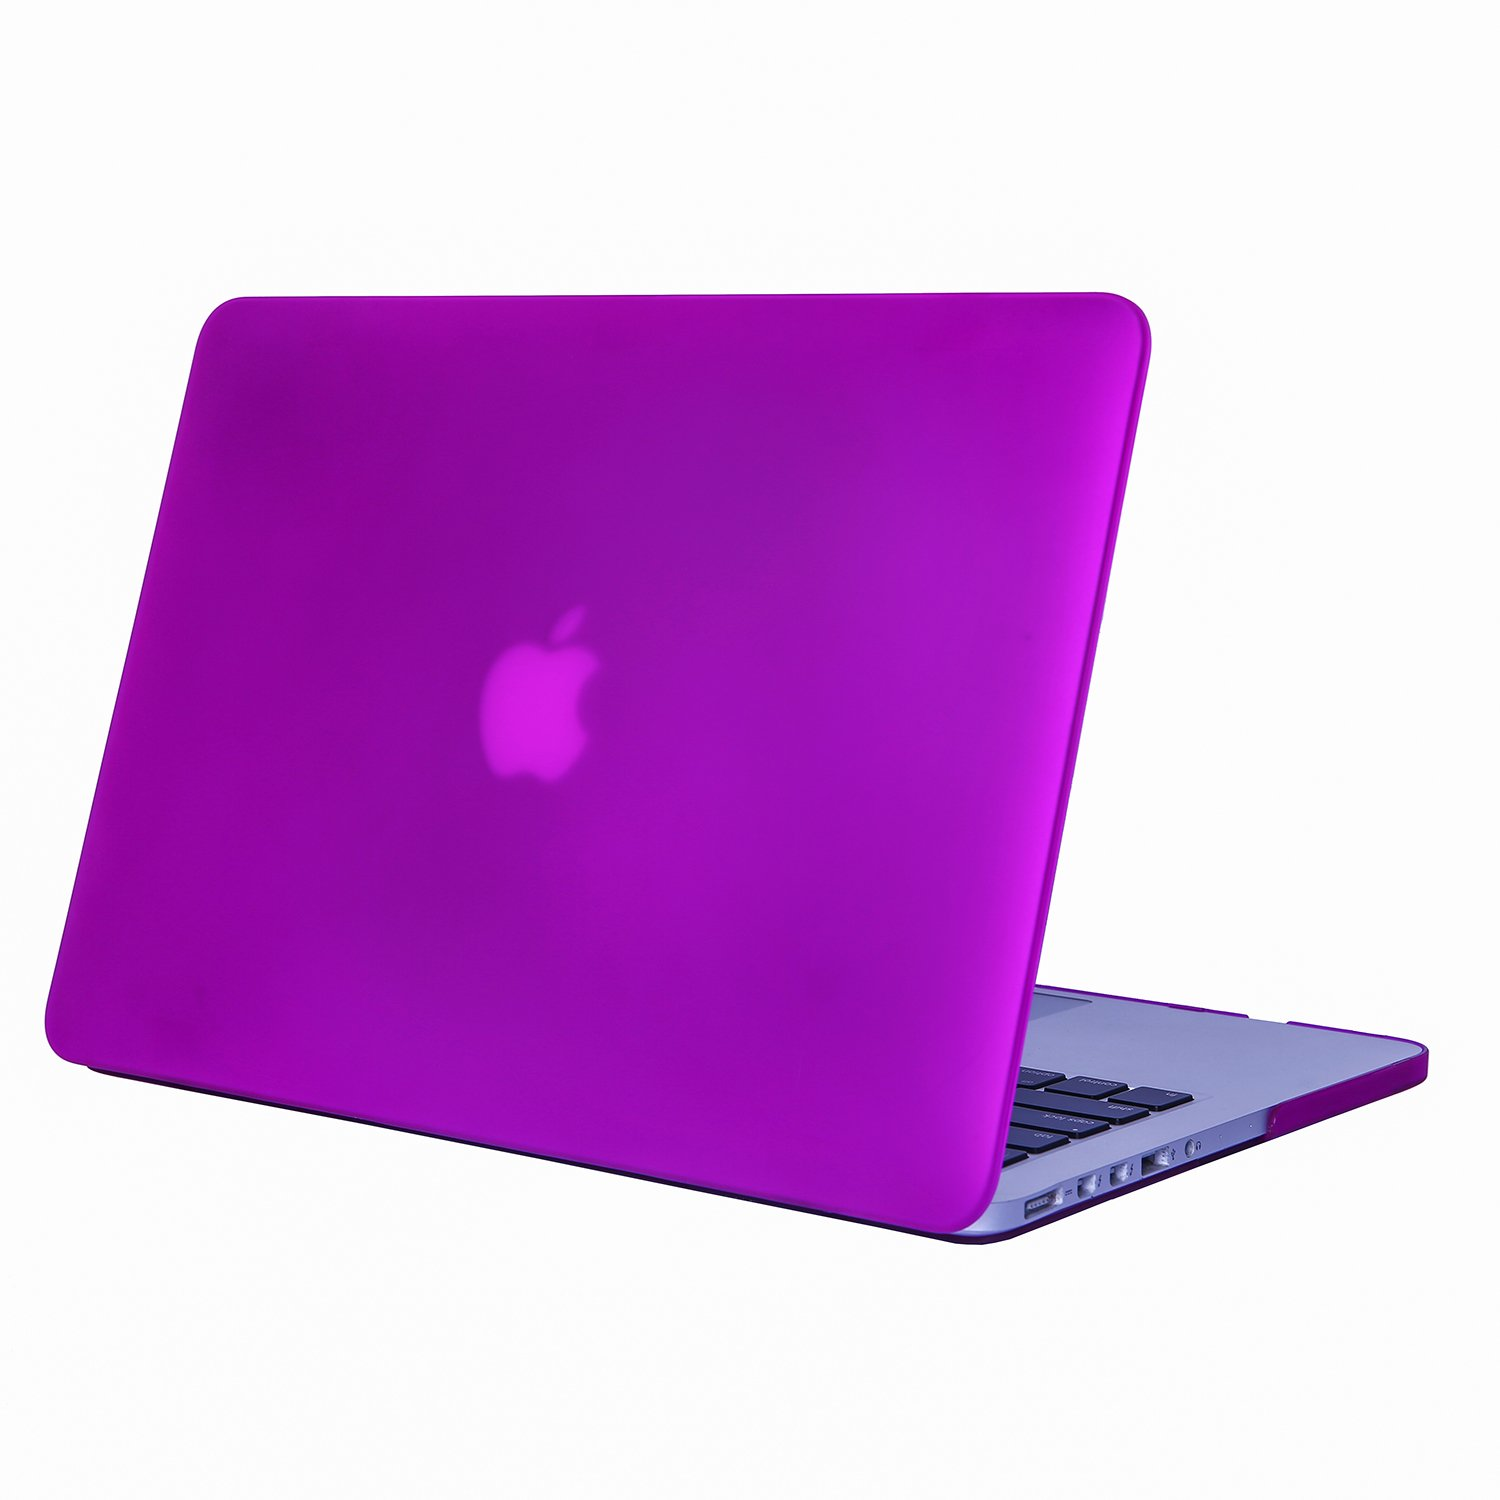 Deep Purple Se7enline Macbook Pro A1398 Case Matte Plastic Hard Shell Cover for MacBook Pro 15 inch with Retina display 2012-2015 Release with Keyboard Cover Skin